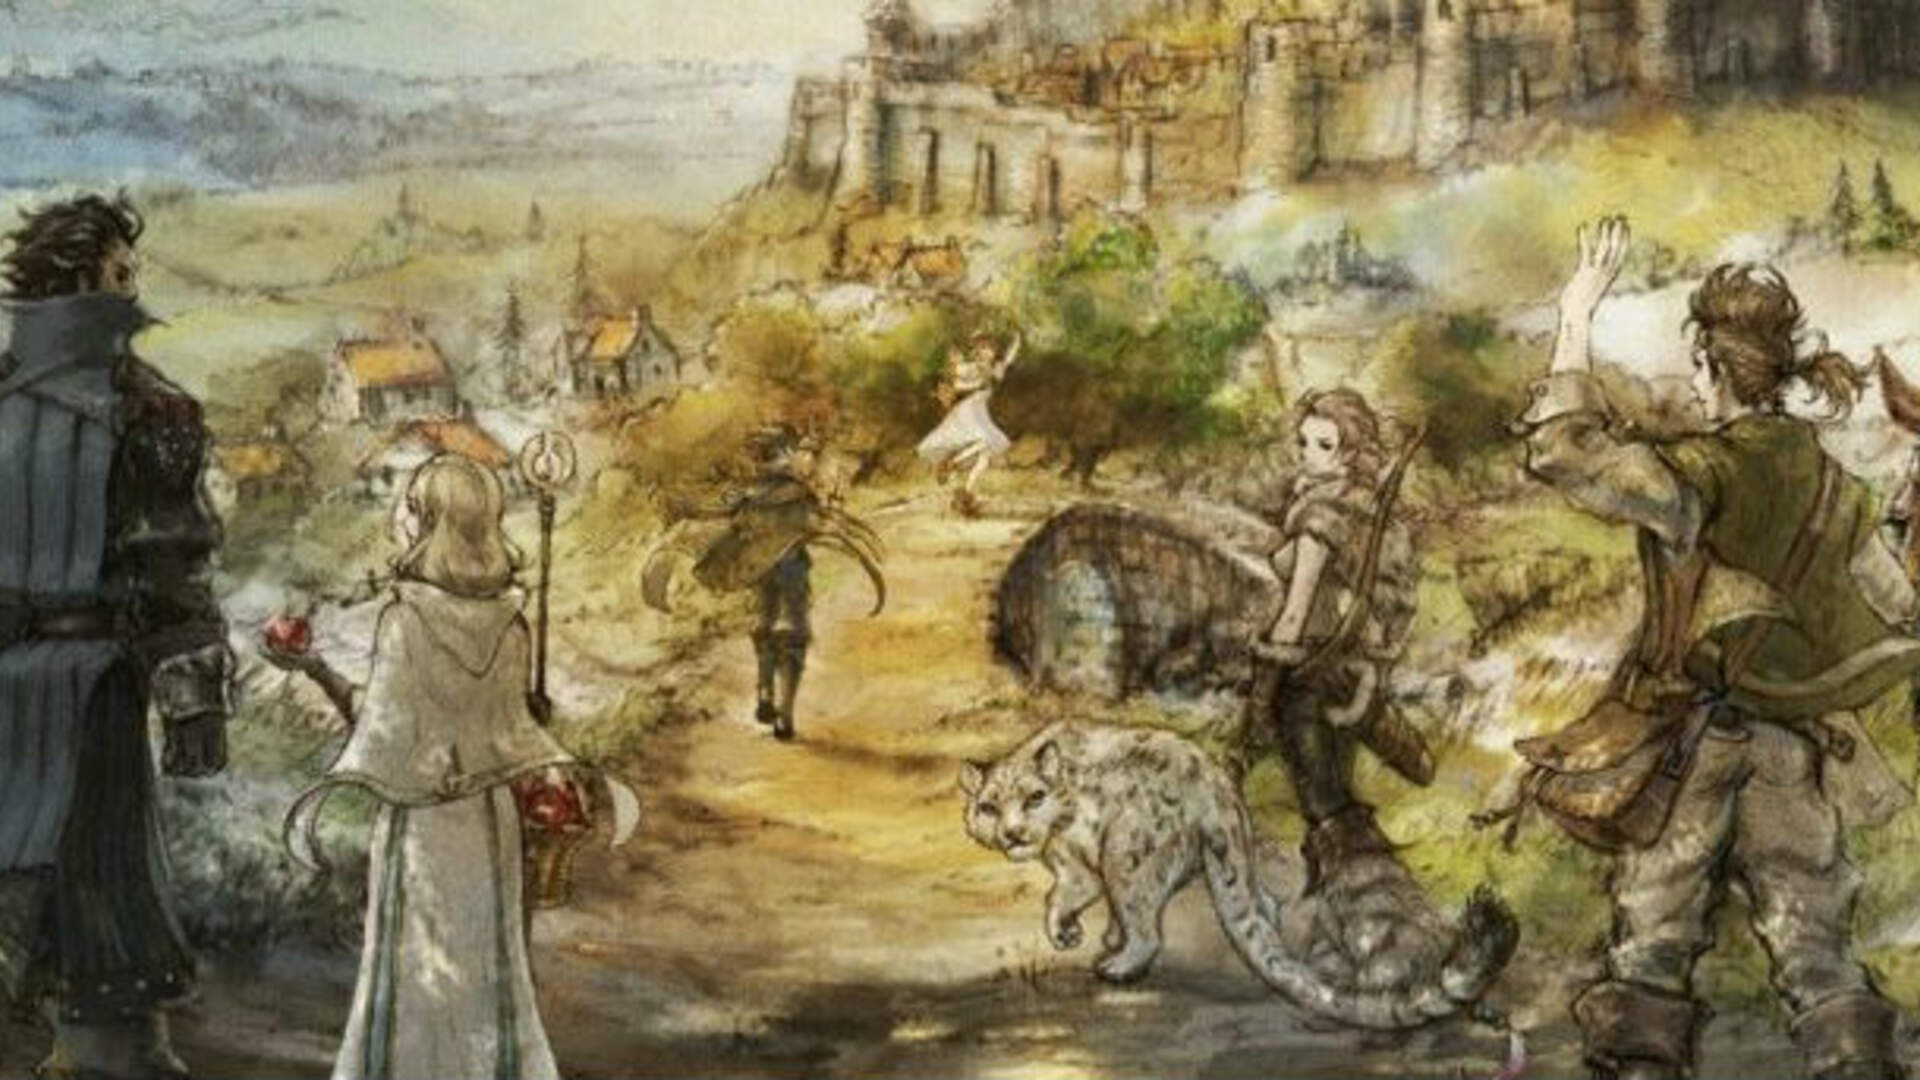 How Octopath Traveler Uses Unreal Engine 4 to Blend Old and New School Graphics